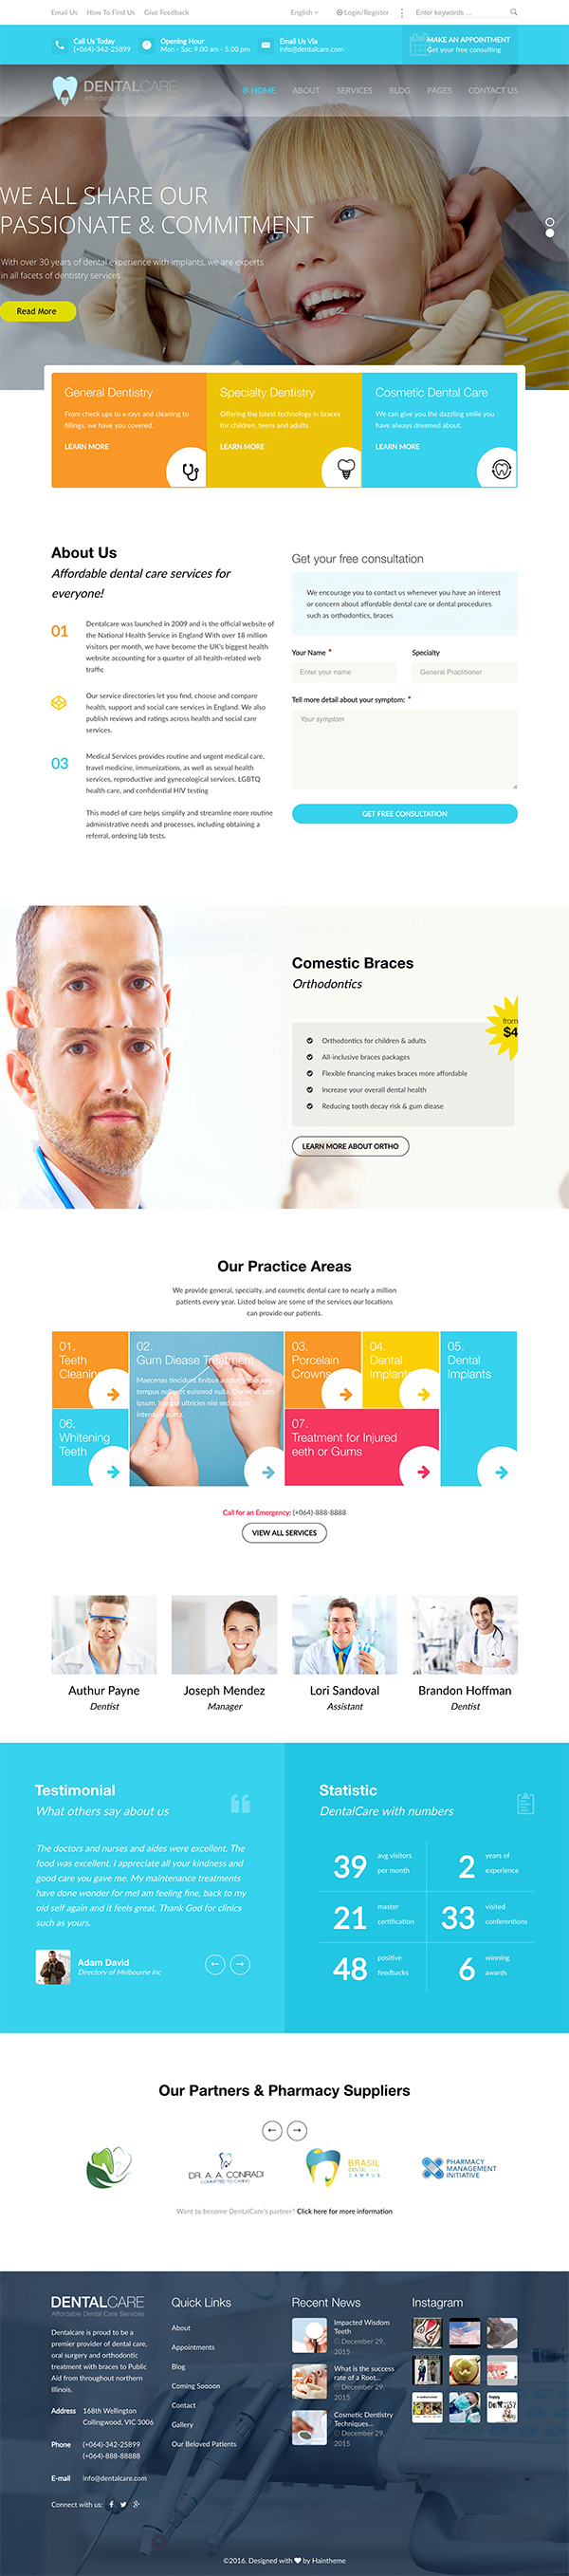 04 Dentalcare - Medical & Health WordPress Theme